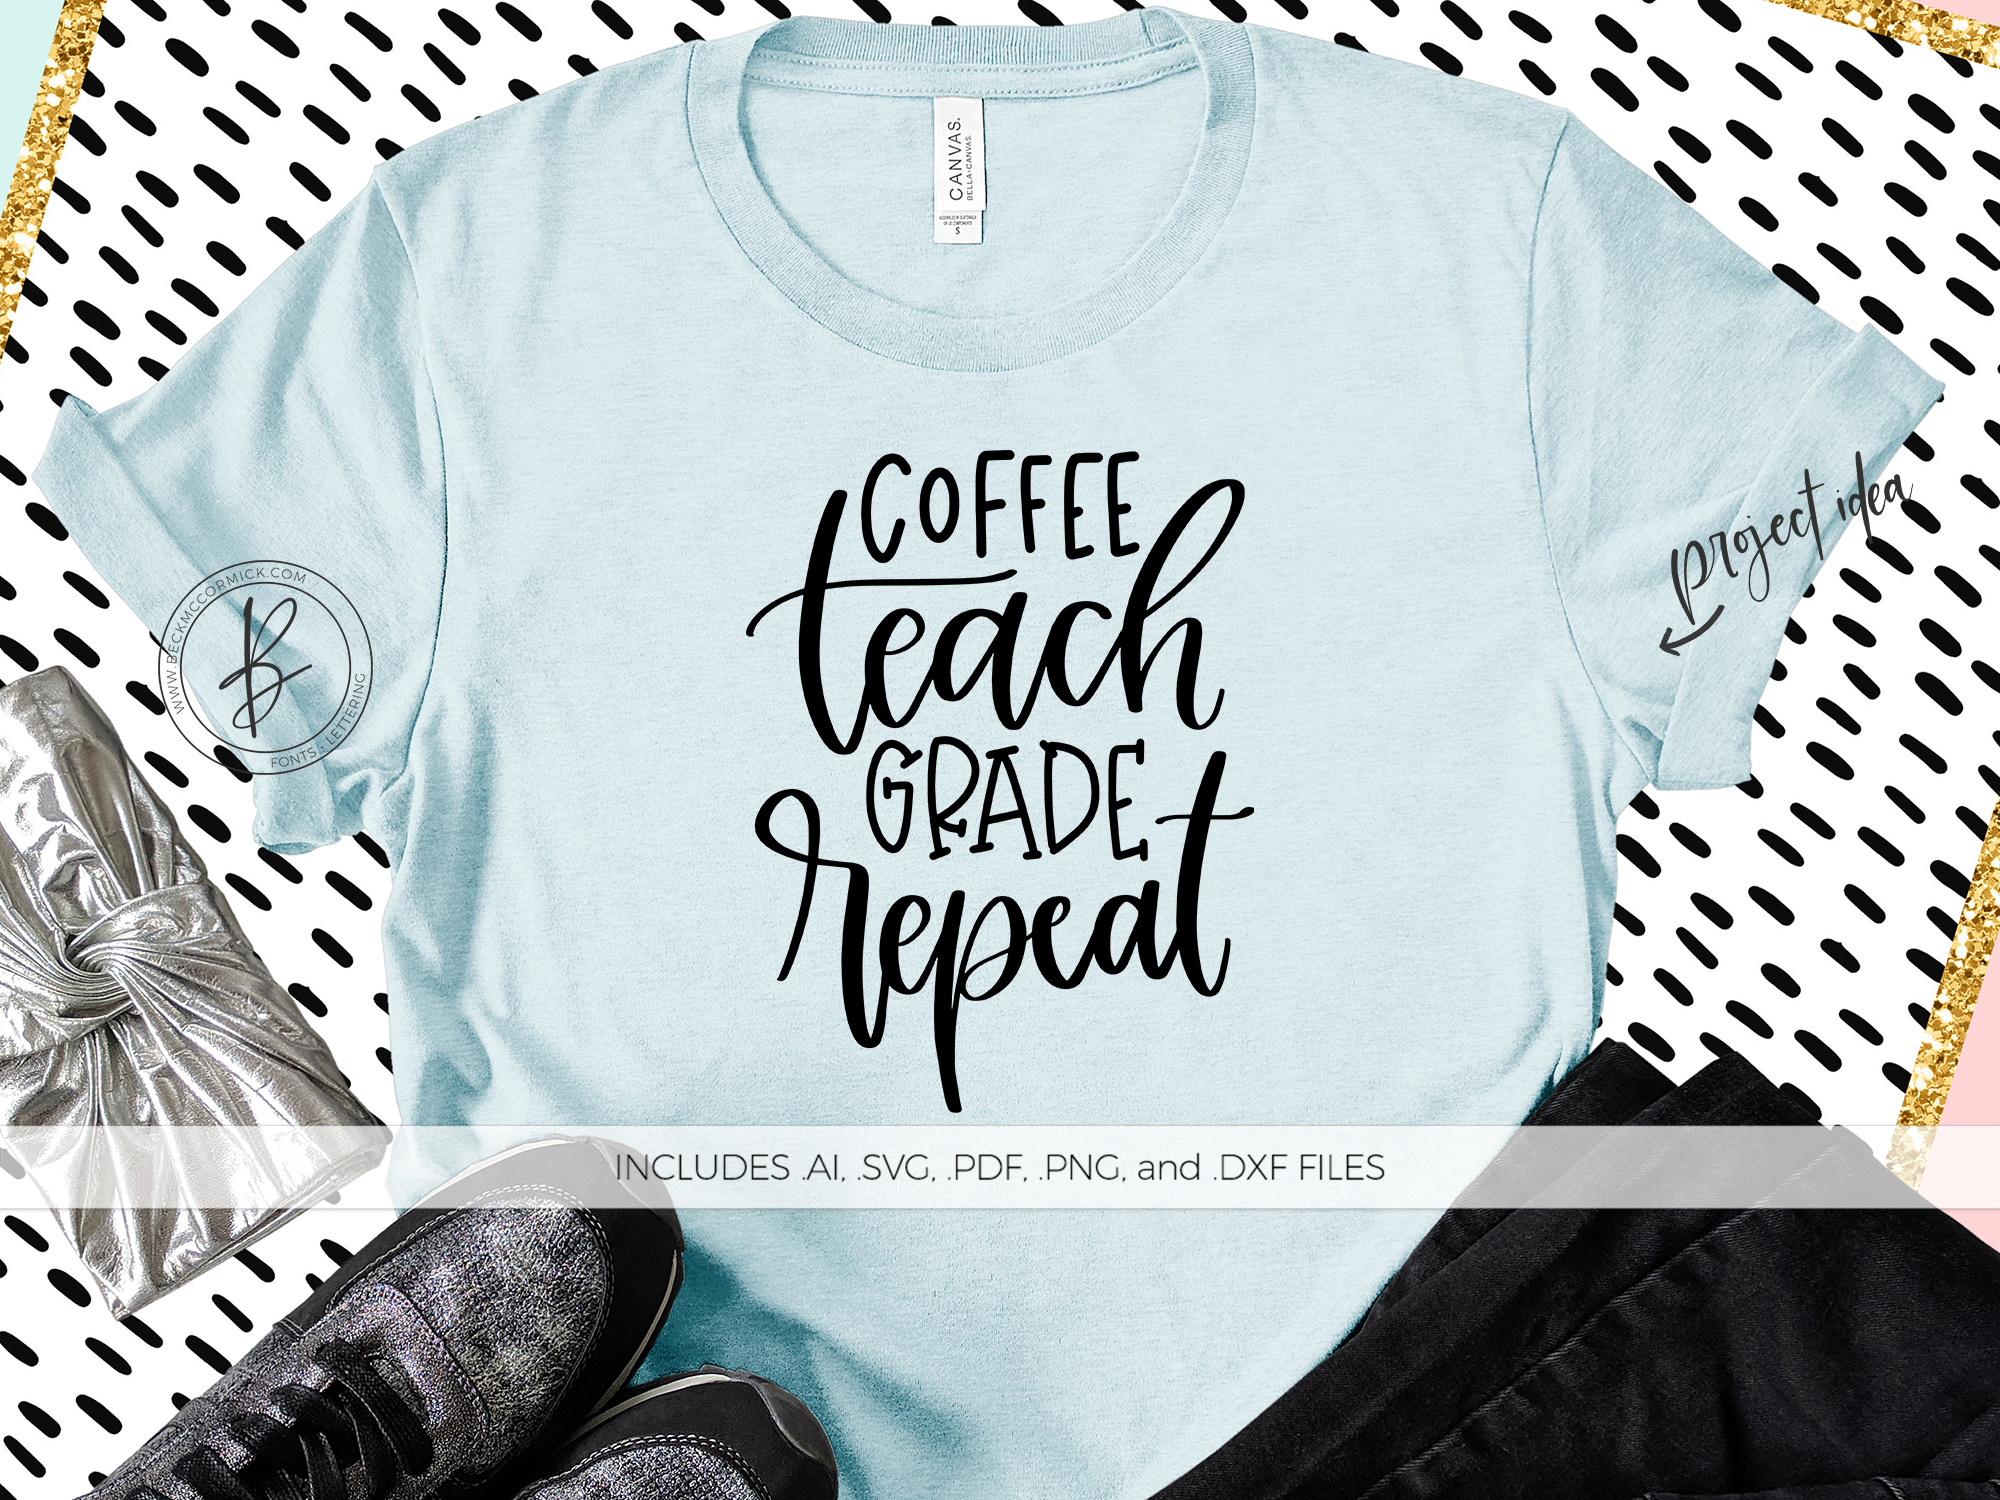 Download Free Coffee Teach Grade Repeat Graphic By Beckmccormick Creative for Cricut Explore, Silhouette and other cutting machines.